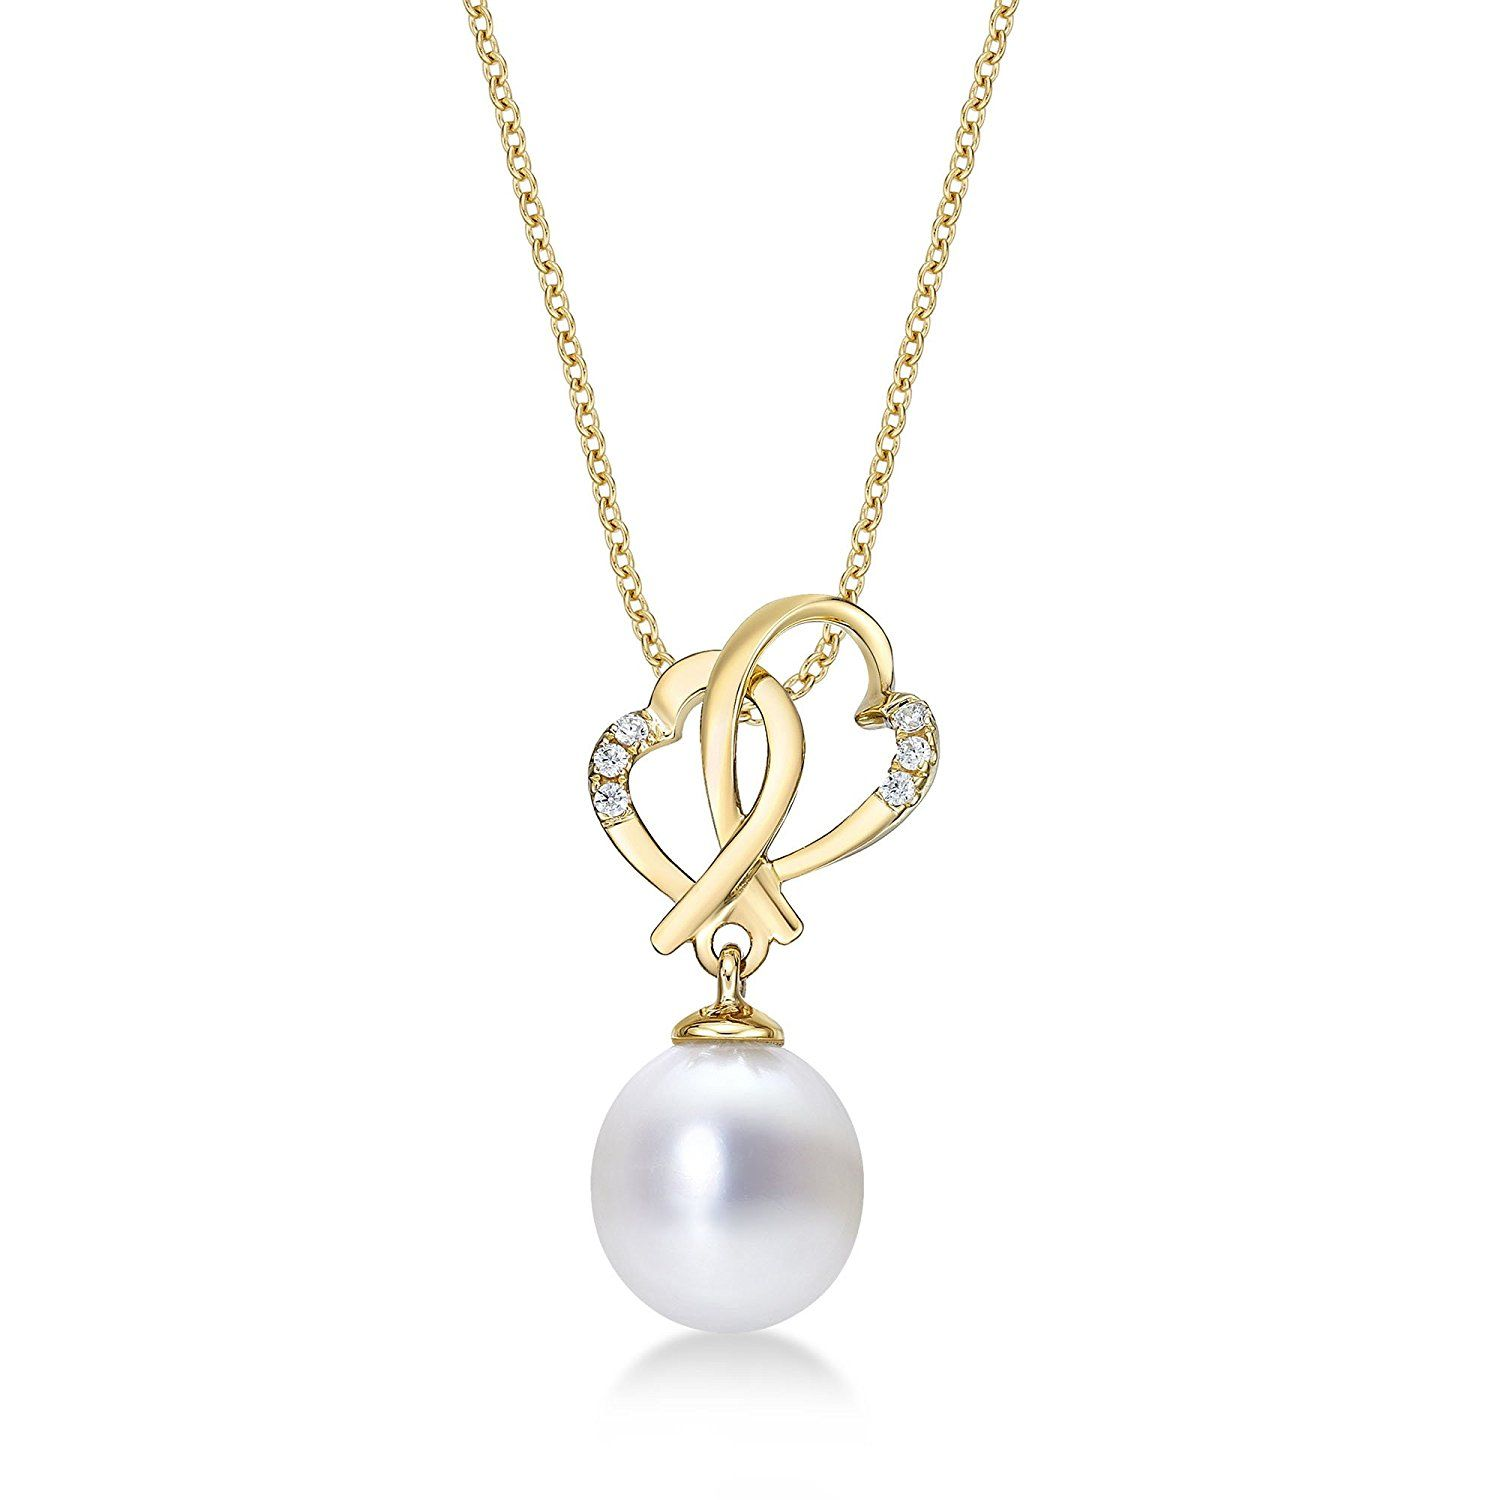 9ct Yellow Gold 6 - 7 mm White Freshwater Pearl Teardrop Pendant with 18